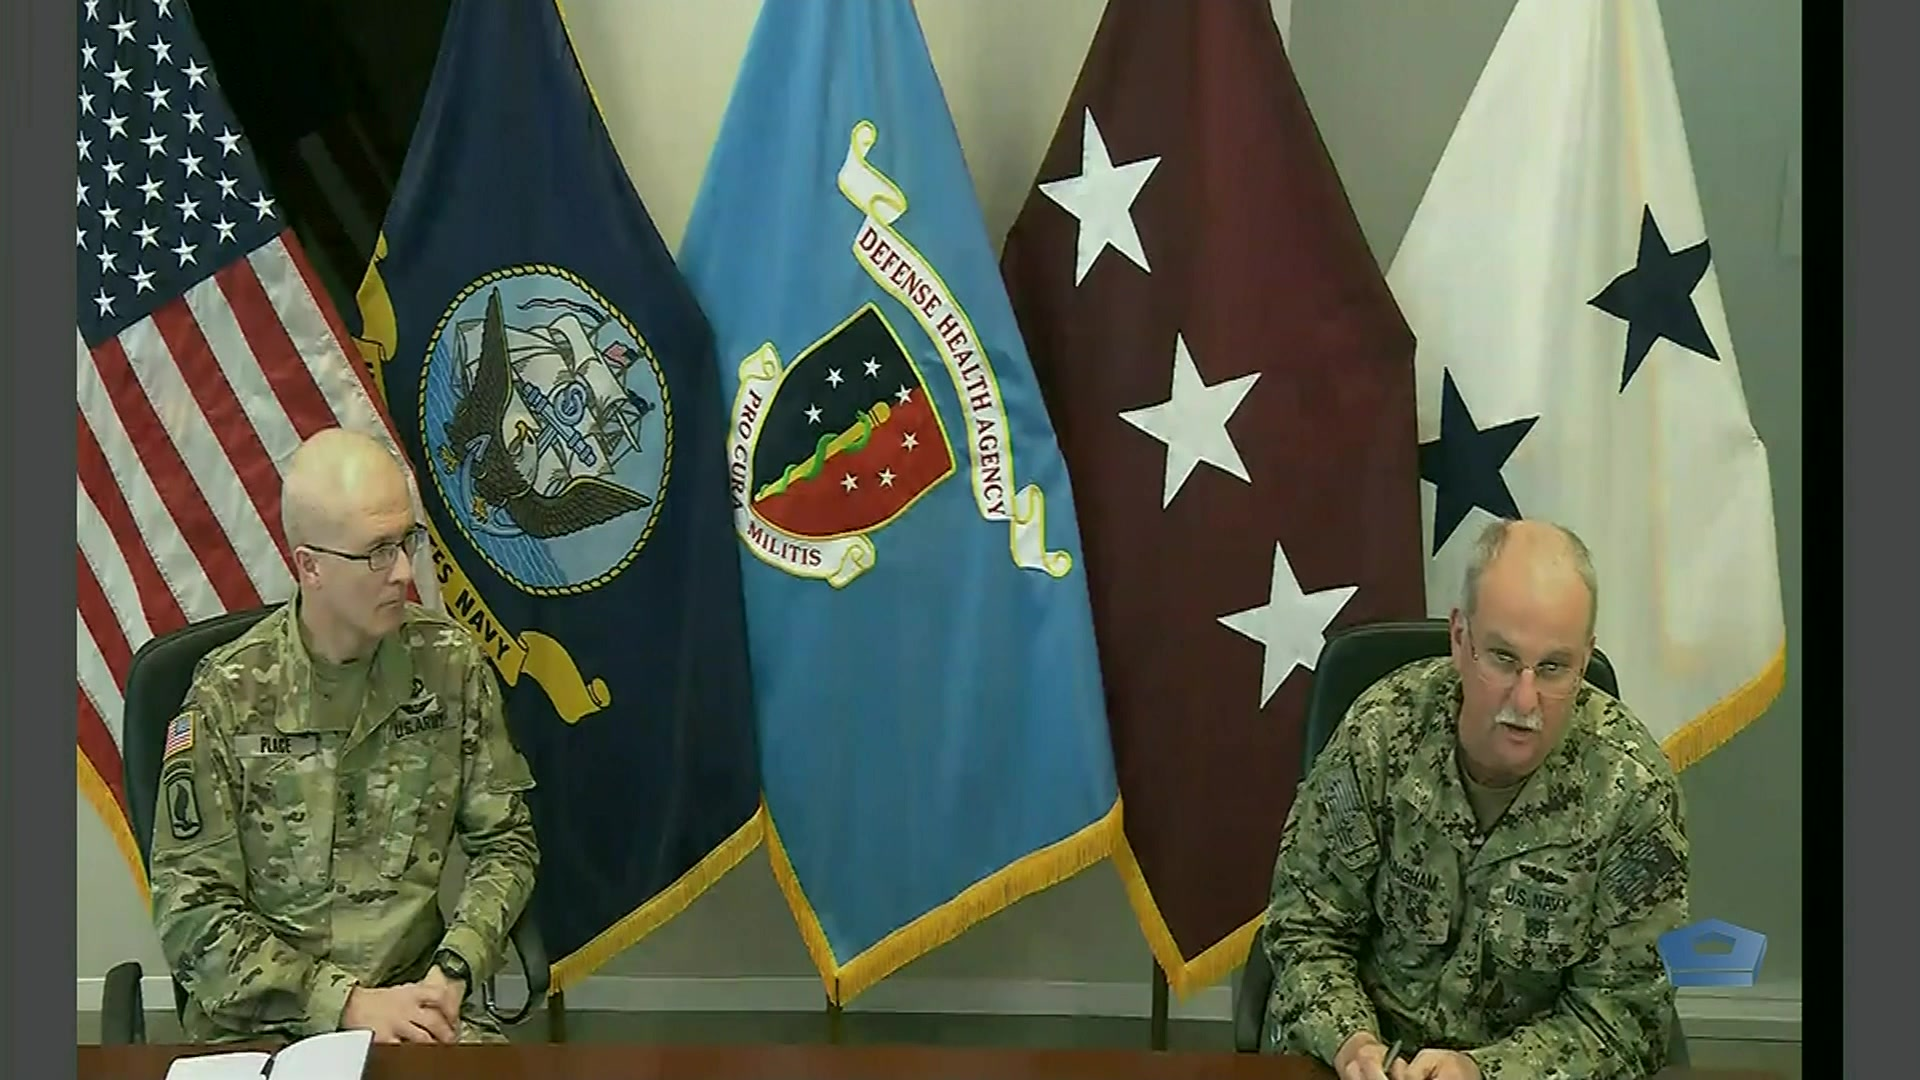 Two military officials sit and speak at a table in front of flags.